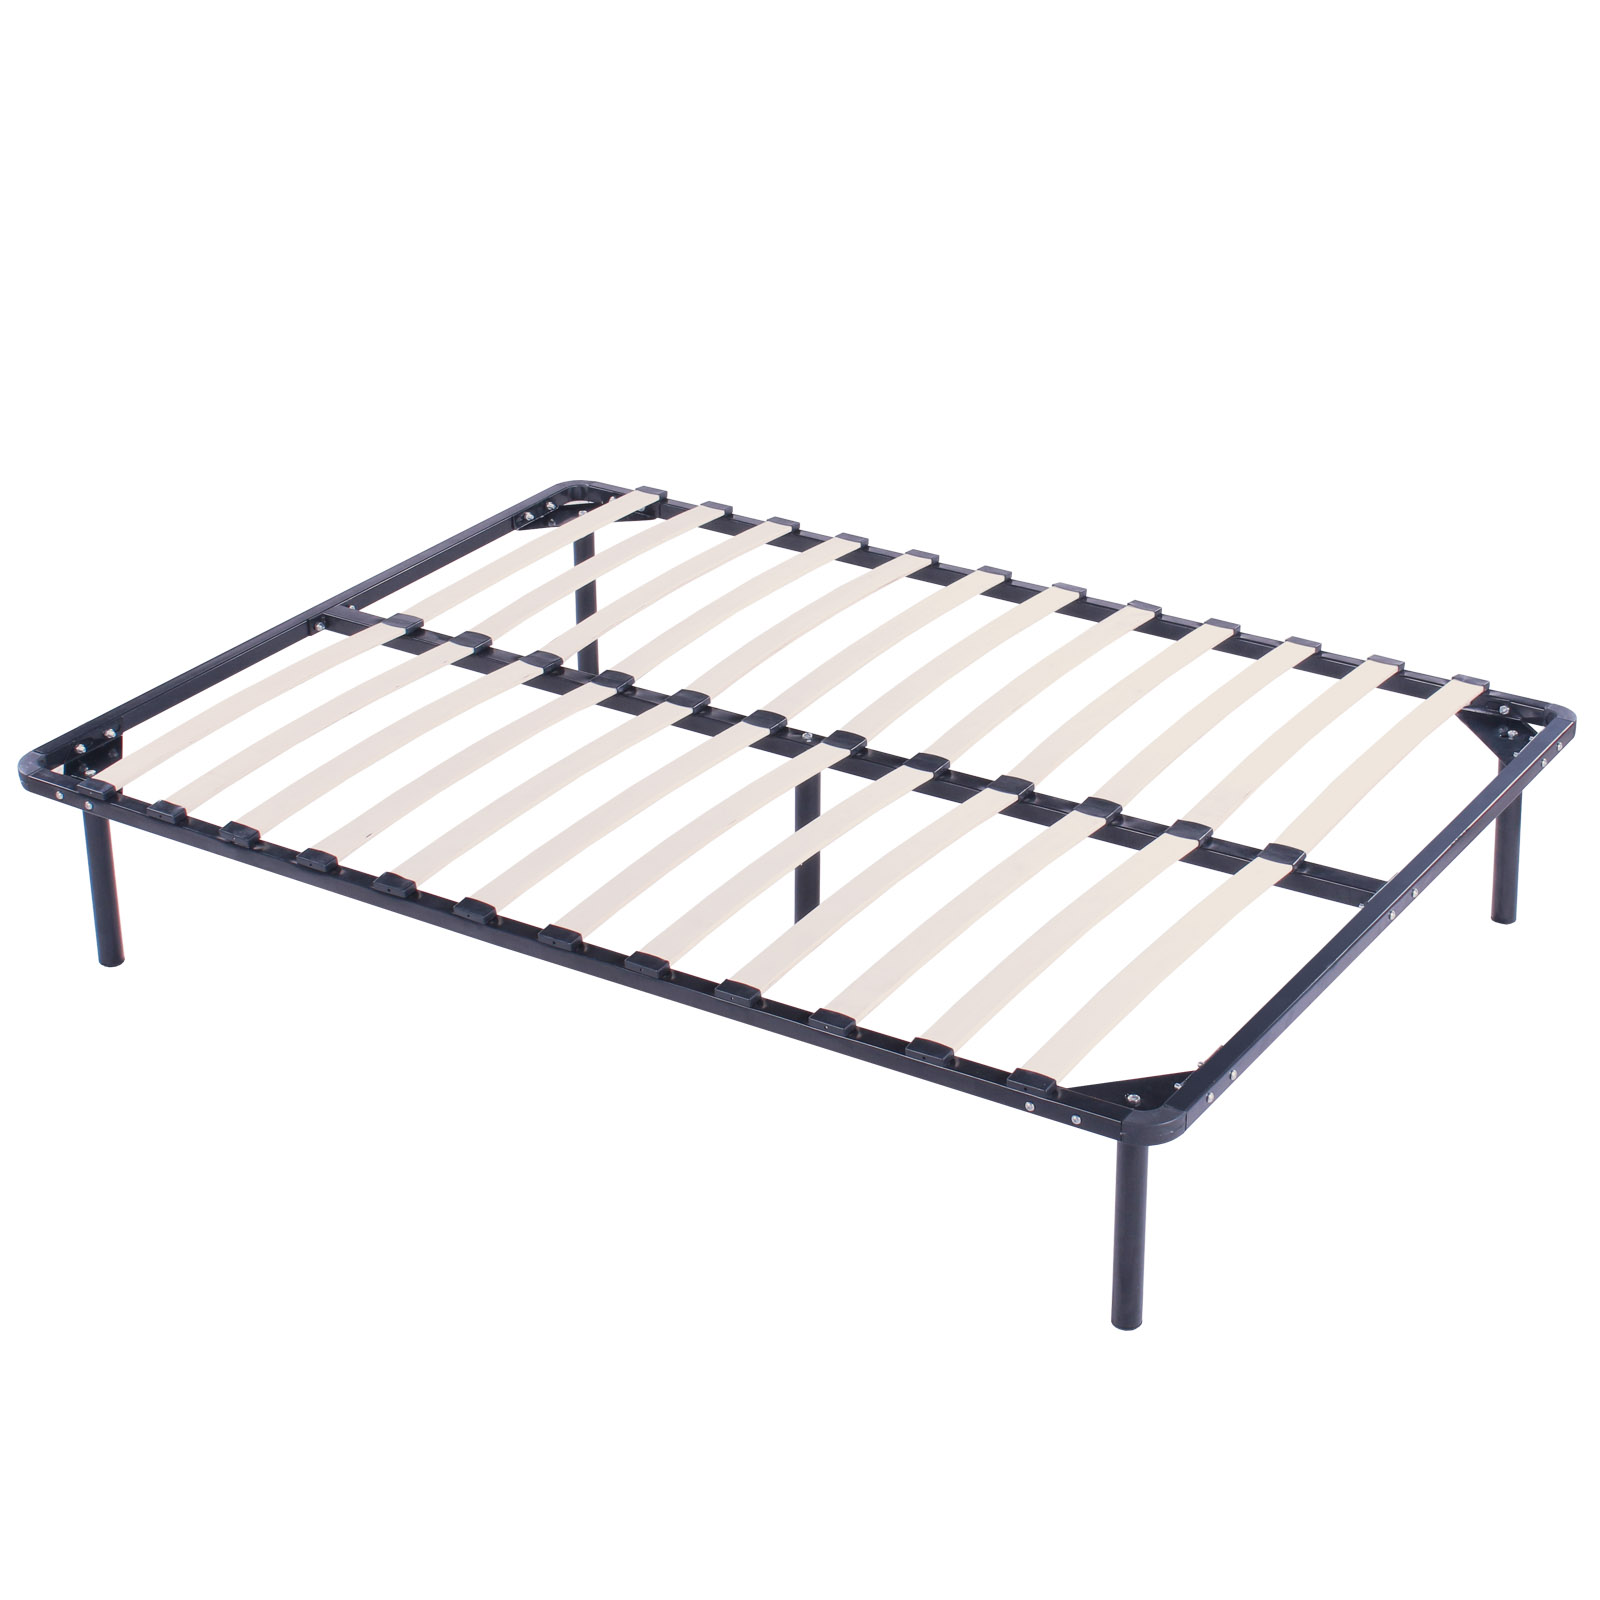 Full size wood slats metal platform bed frame mattress Full bed frames